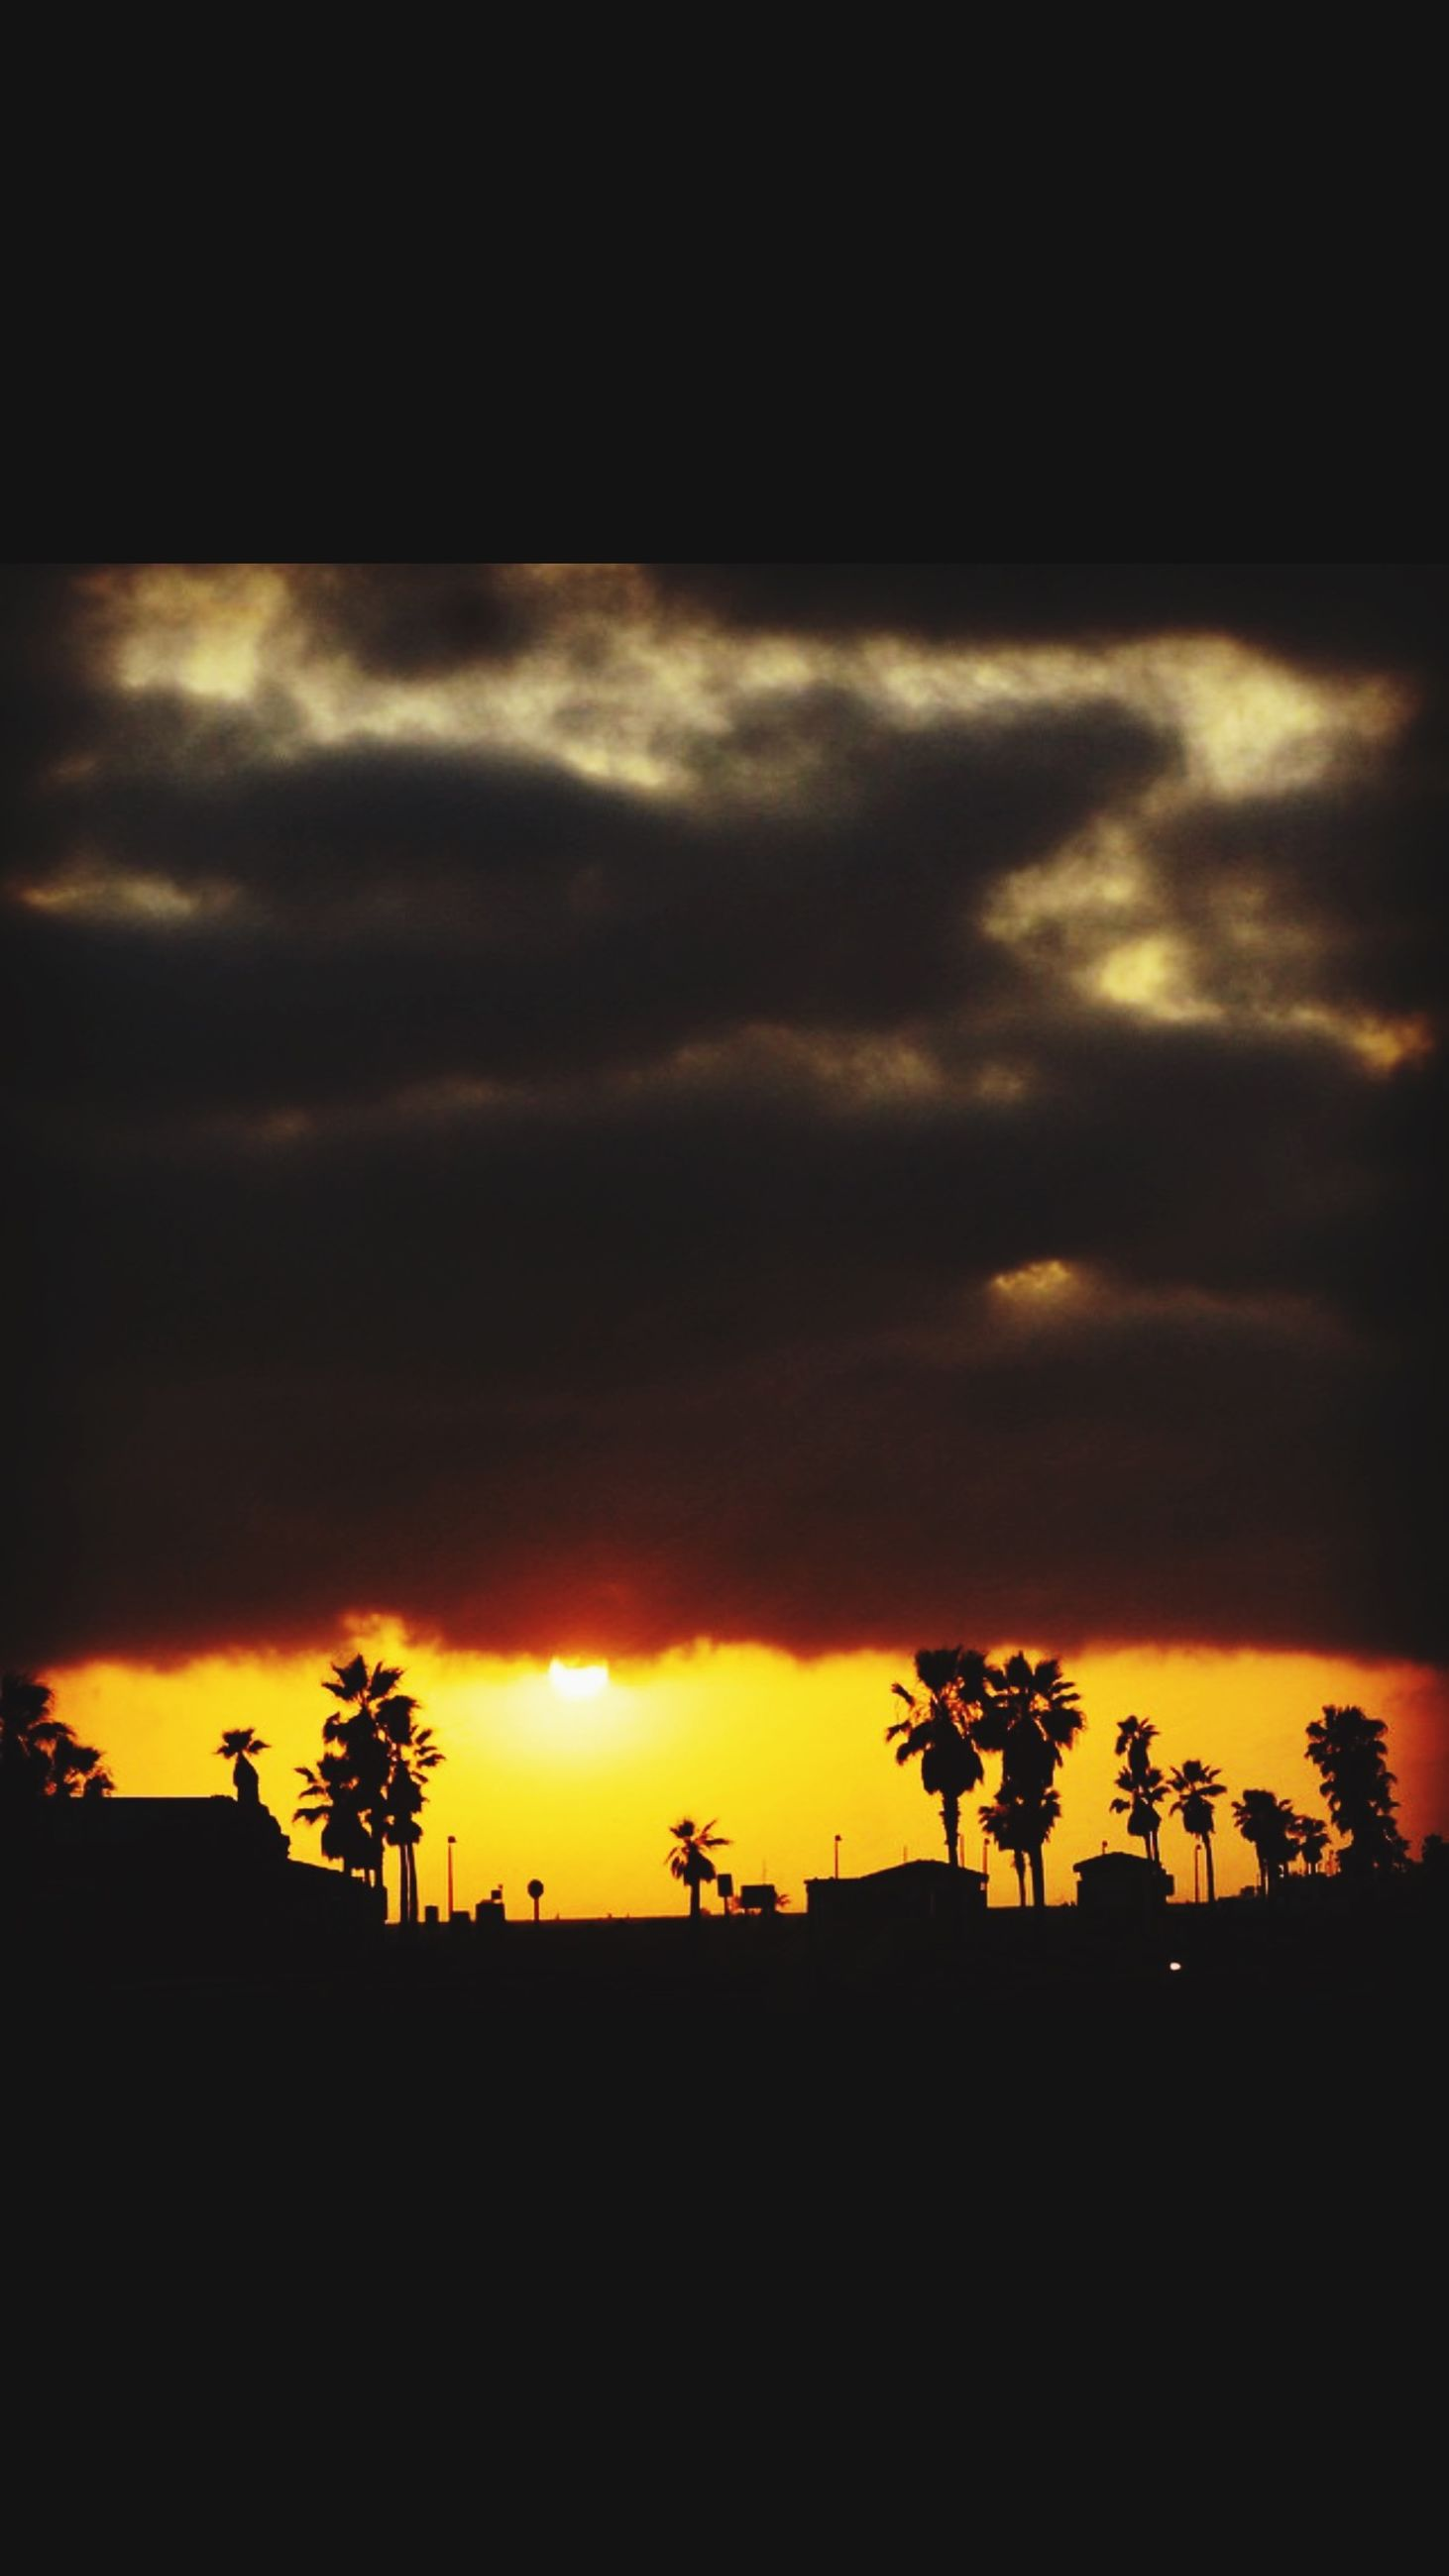 sunset, silhouette, sky, tree, palm tree, beauty in nature, tranquil scene, scenics, tranquility, cloud - sky, orange color, nature, idyllic, dramatic sky, cloud, cloudy, growth, landscape, outdoors, moody sky